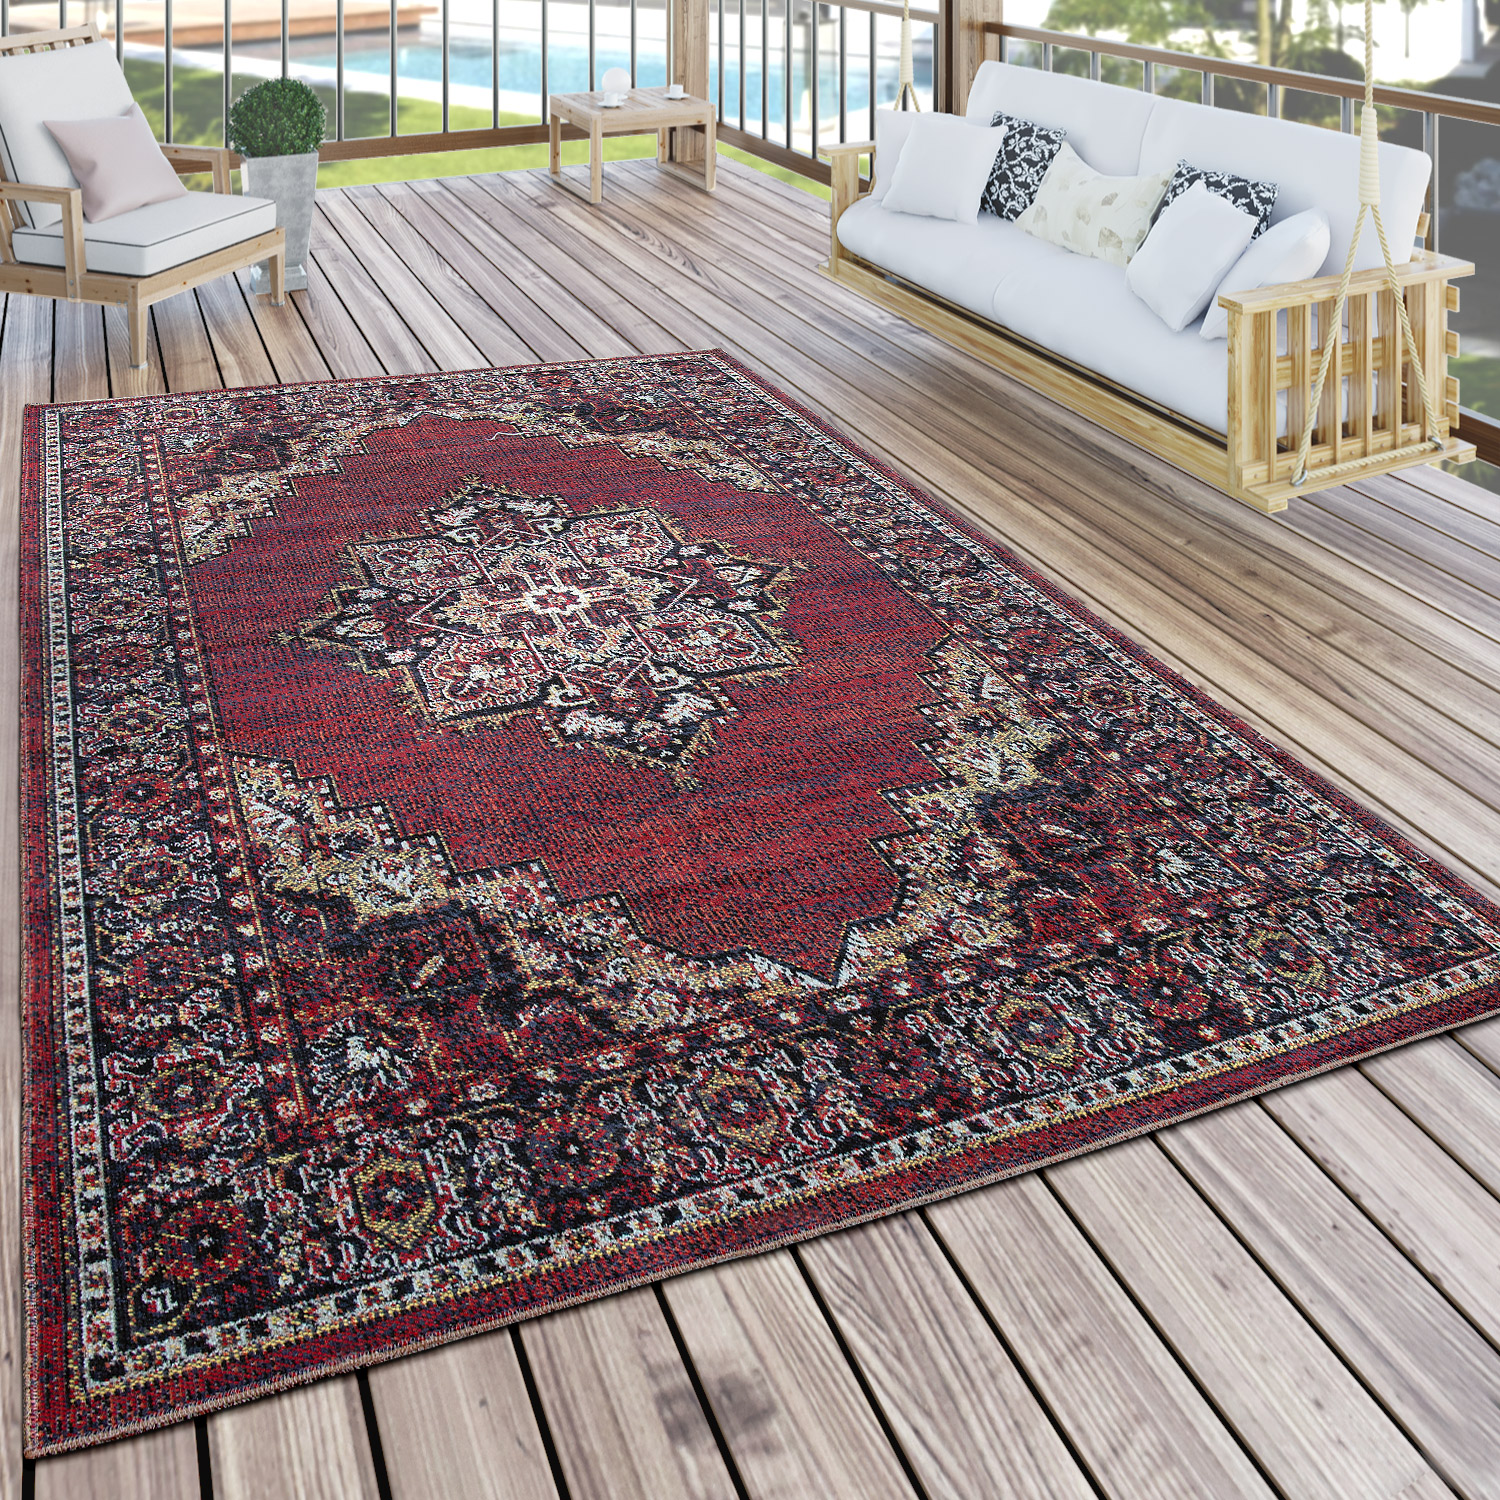 Teppich Bordeaux In Outdoor Teppich Orient Optik Bordeaux Rot